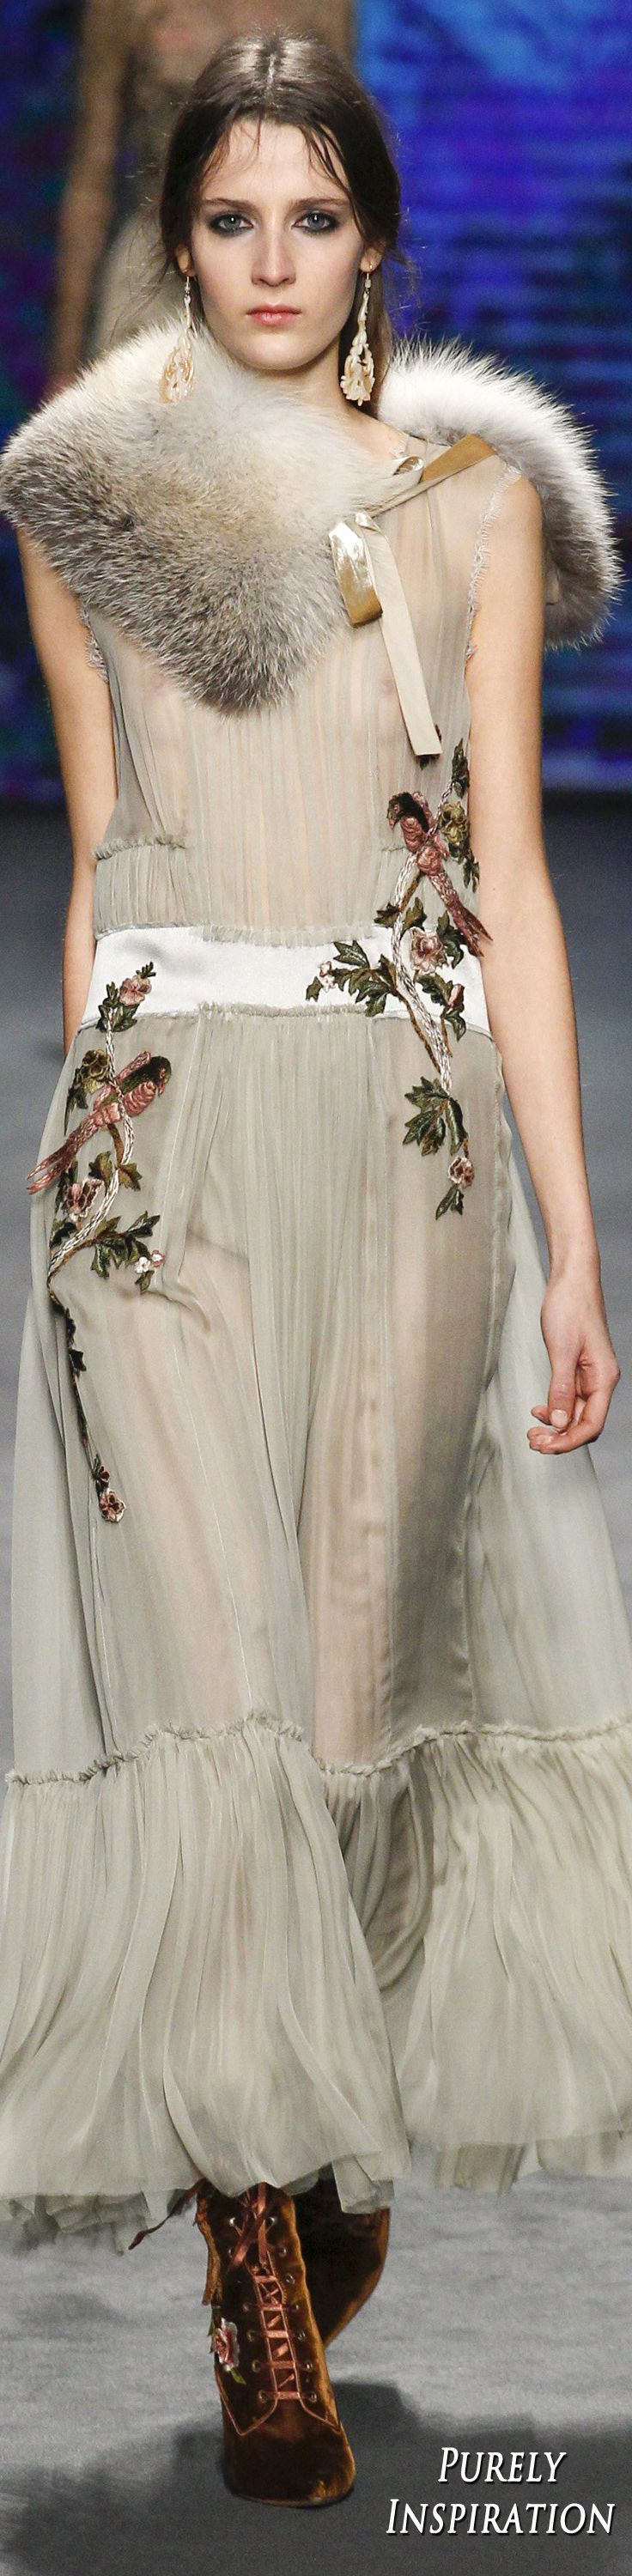 Alberta Ferretti FW2016 Women's Fashion RTW | Purely Inspiration